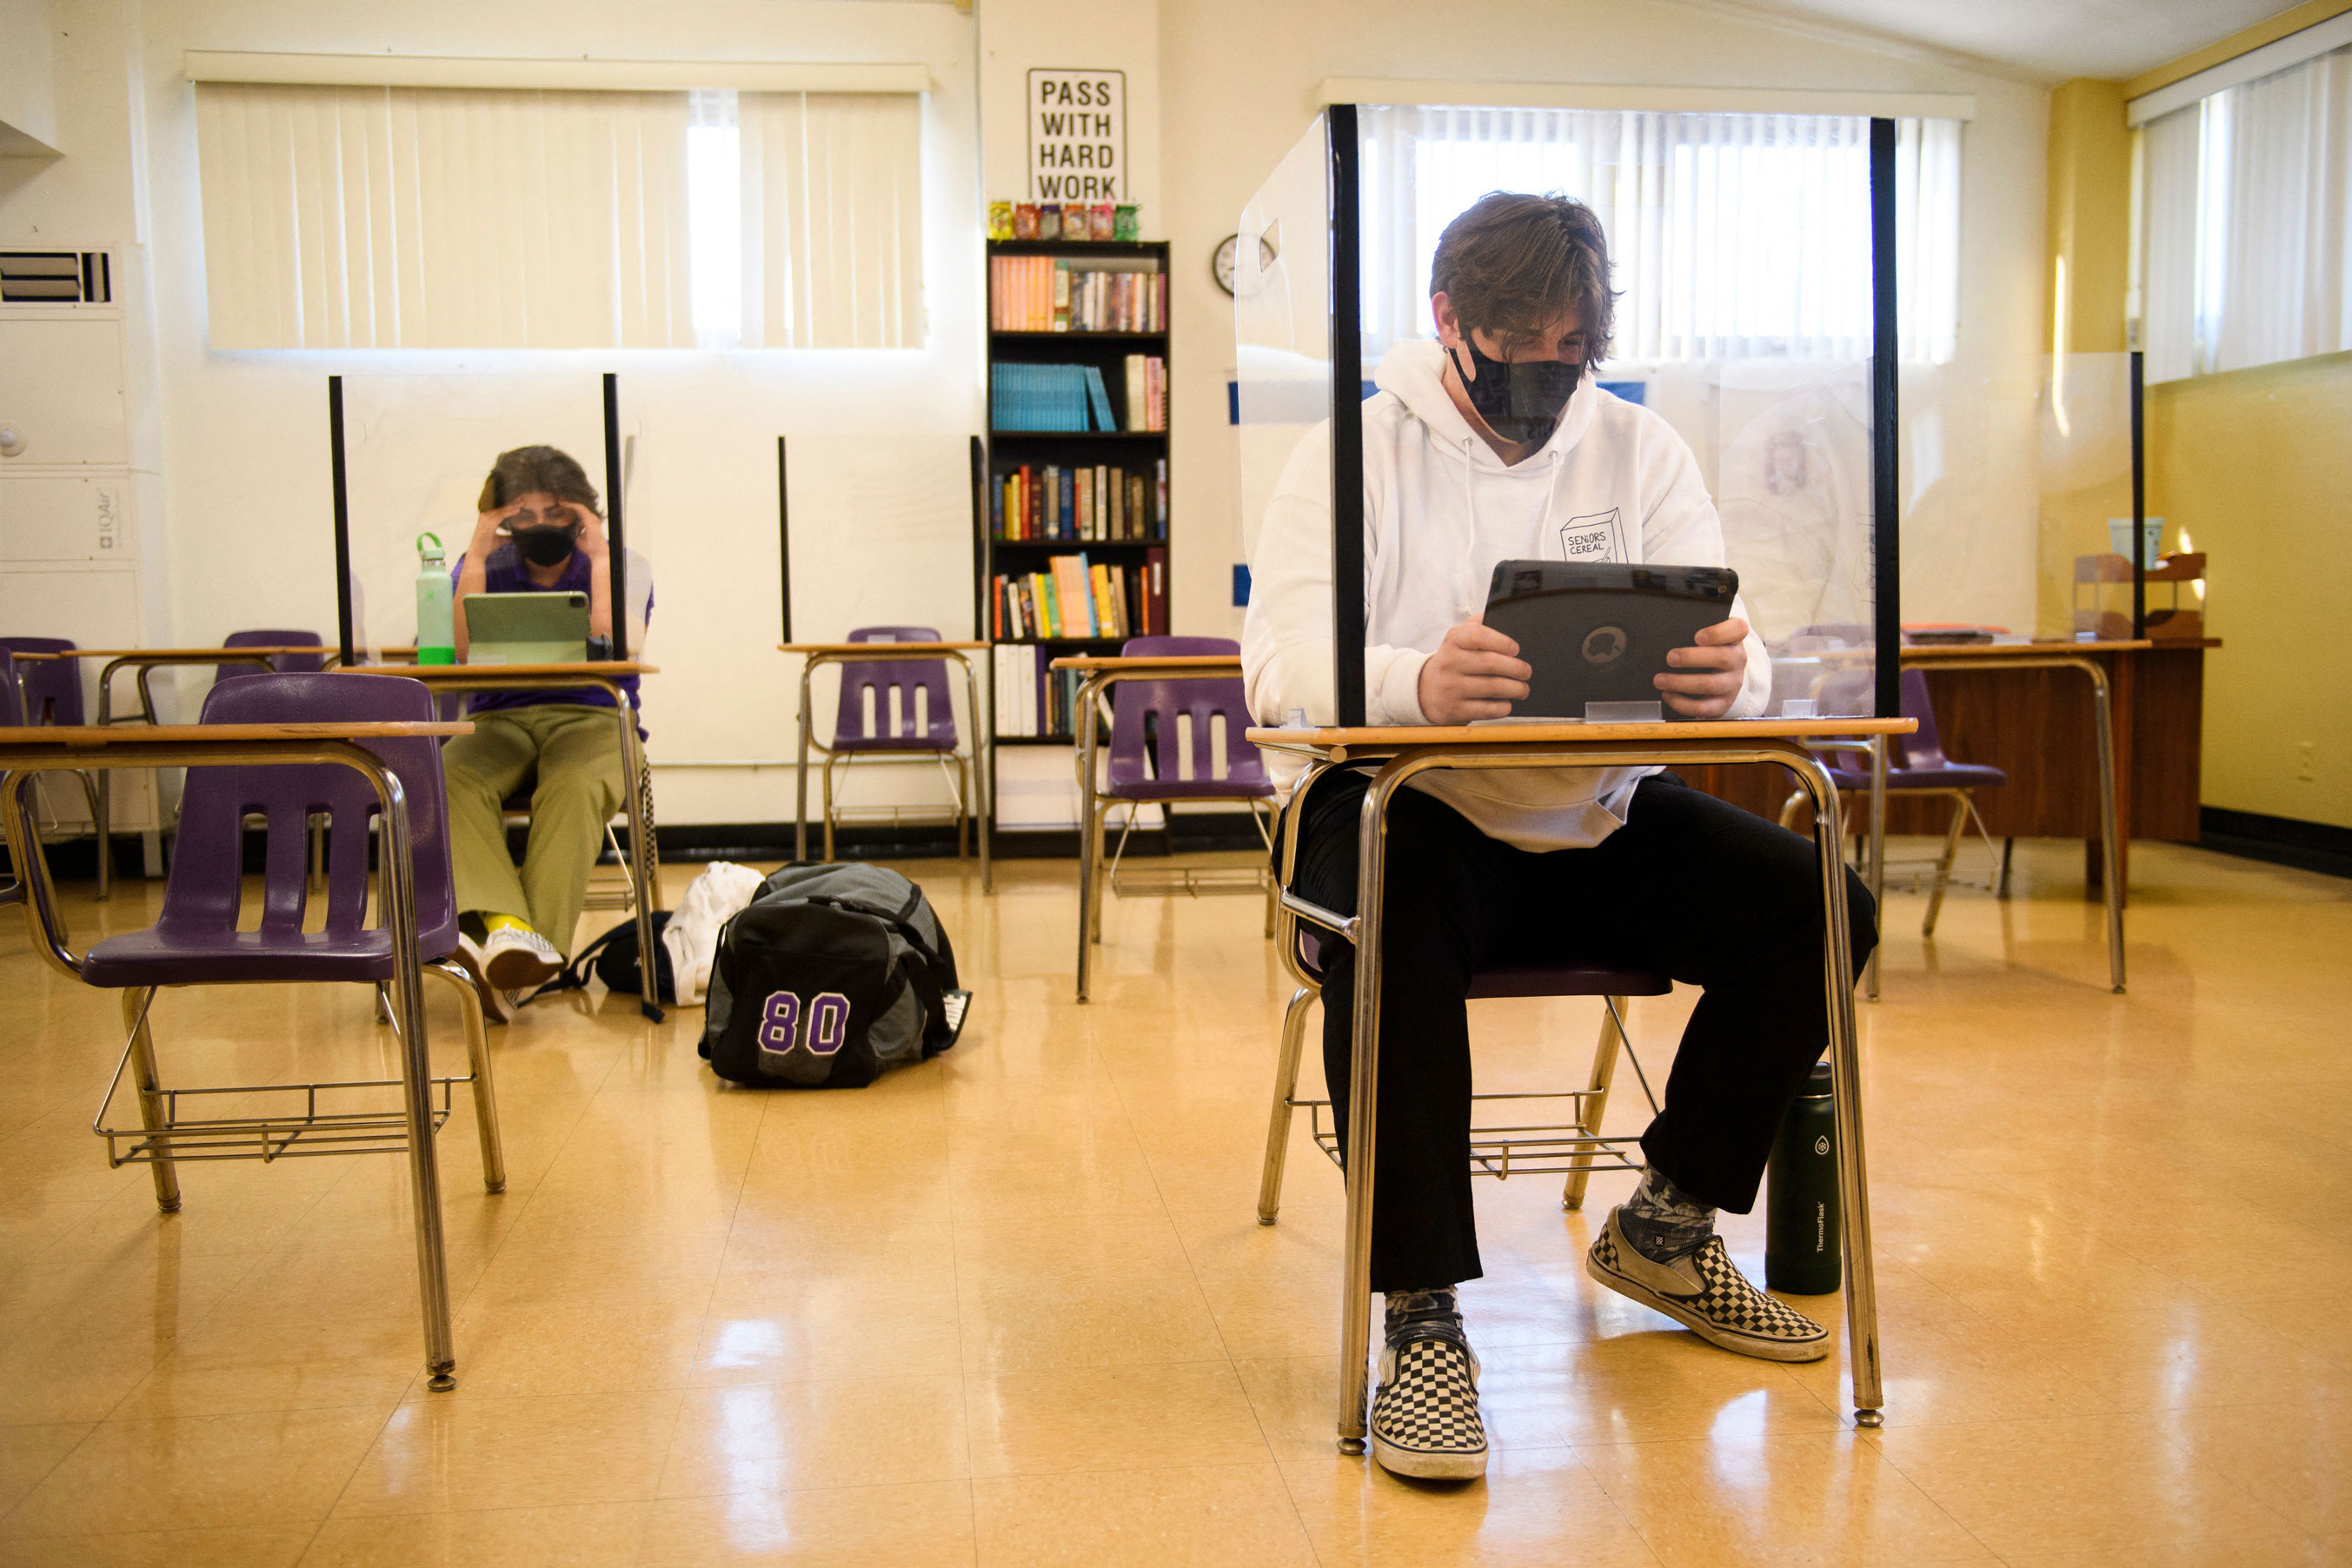 Students wear masks as they return to in-person learning on March 24, in Long Beach, California.